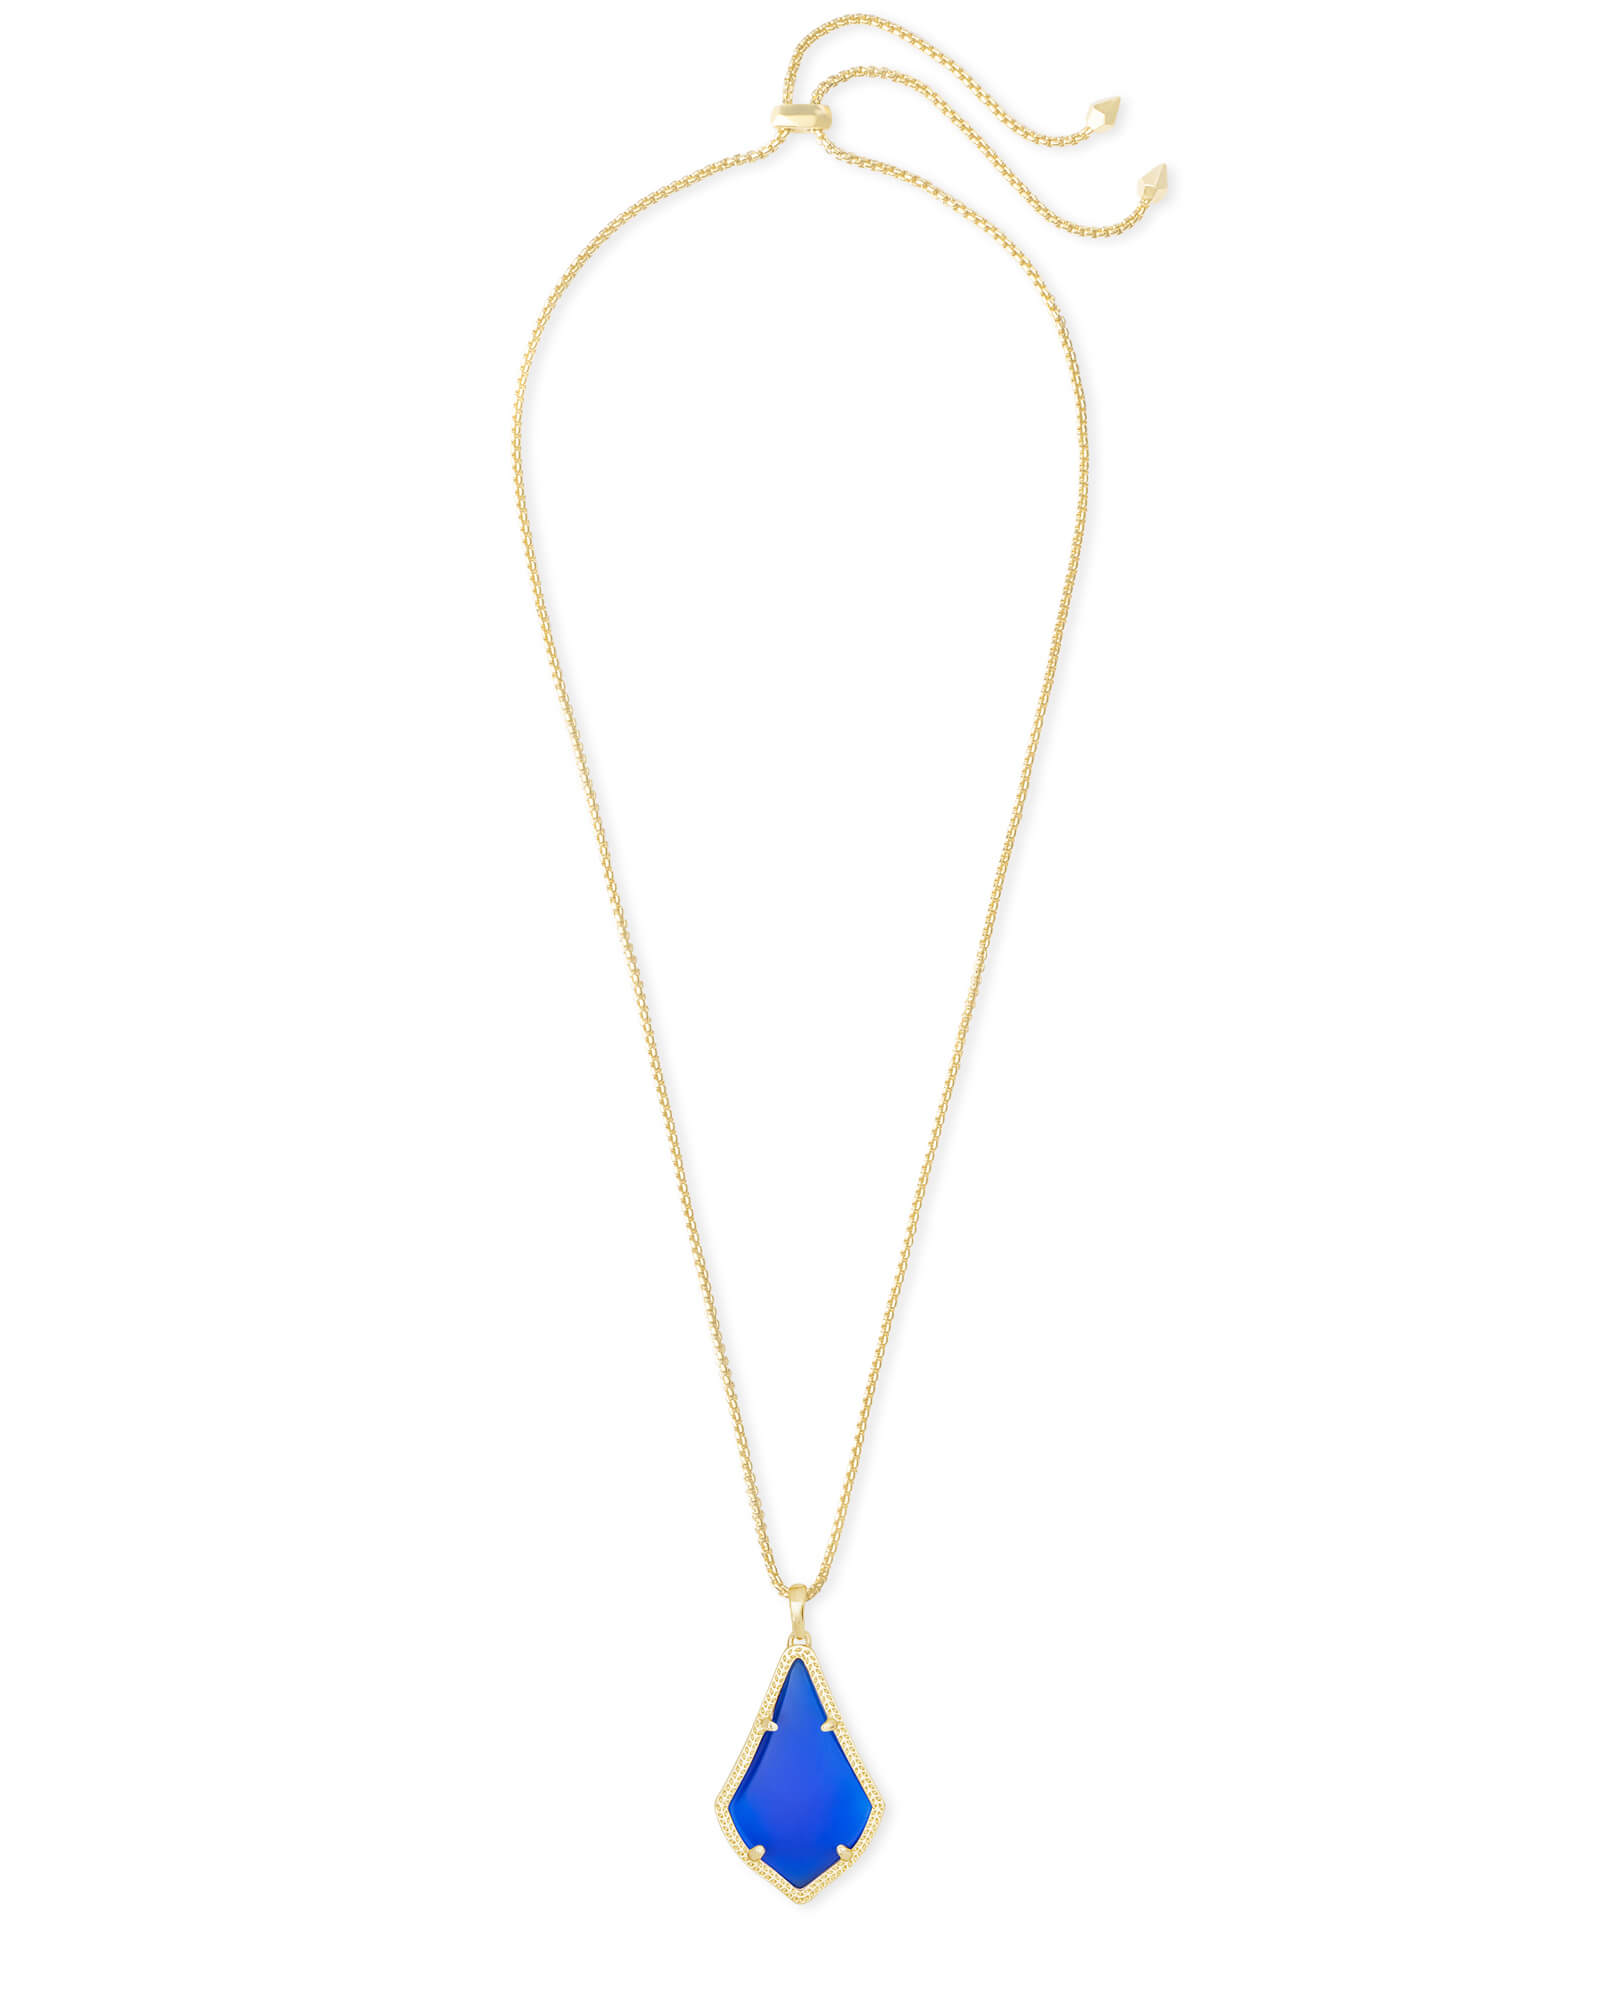 Alex Gold Pendant Necklace in Cobalt Cat's Eye